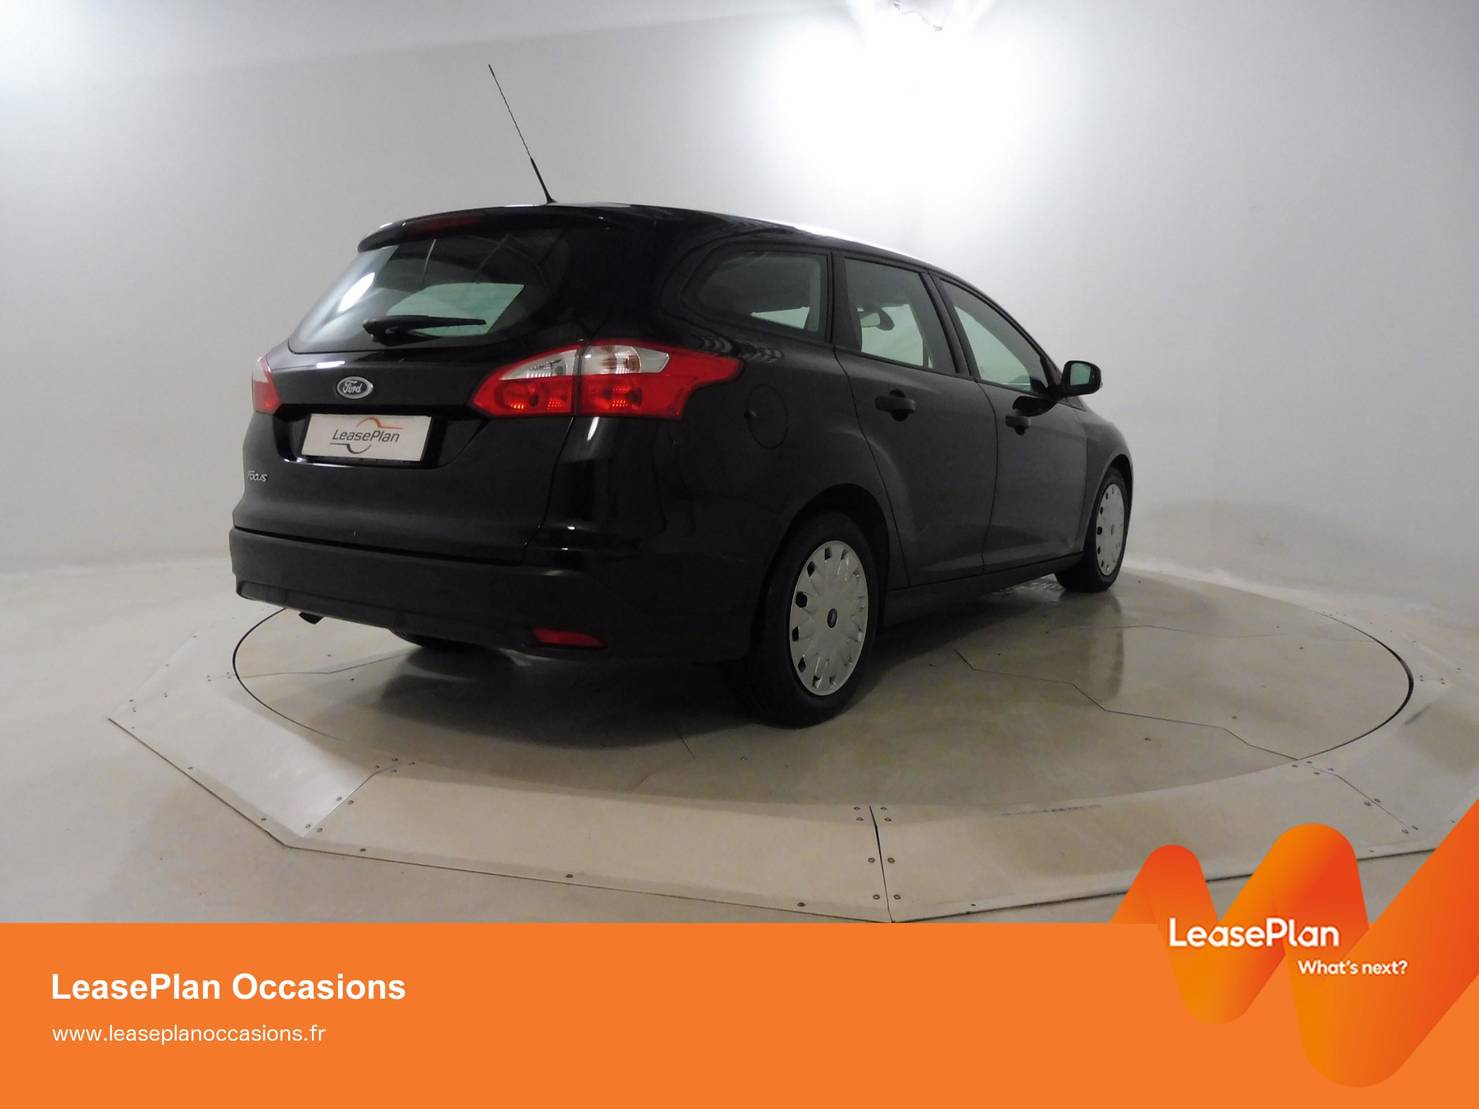 Ford Focus 1.6 TDCi 105 ECOnetic Technology 88g, Business Nav. detail2